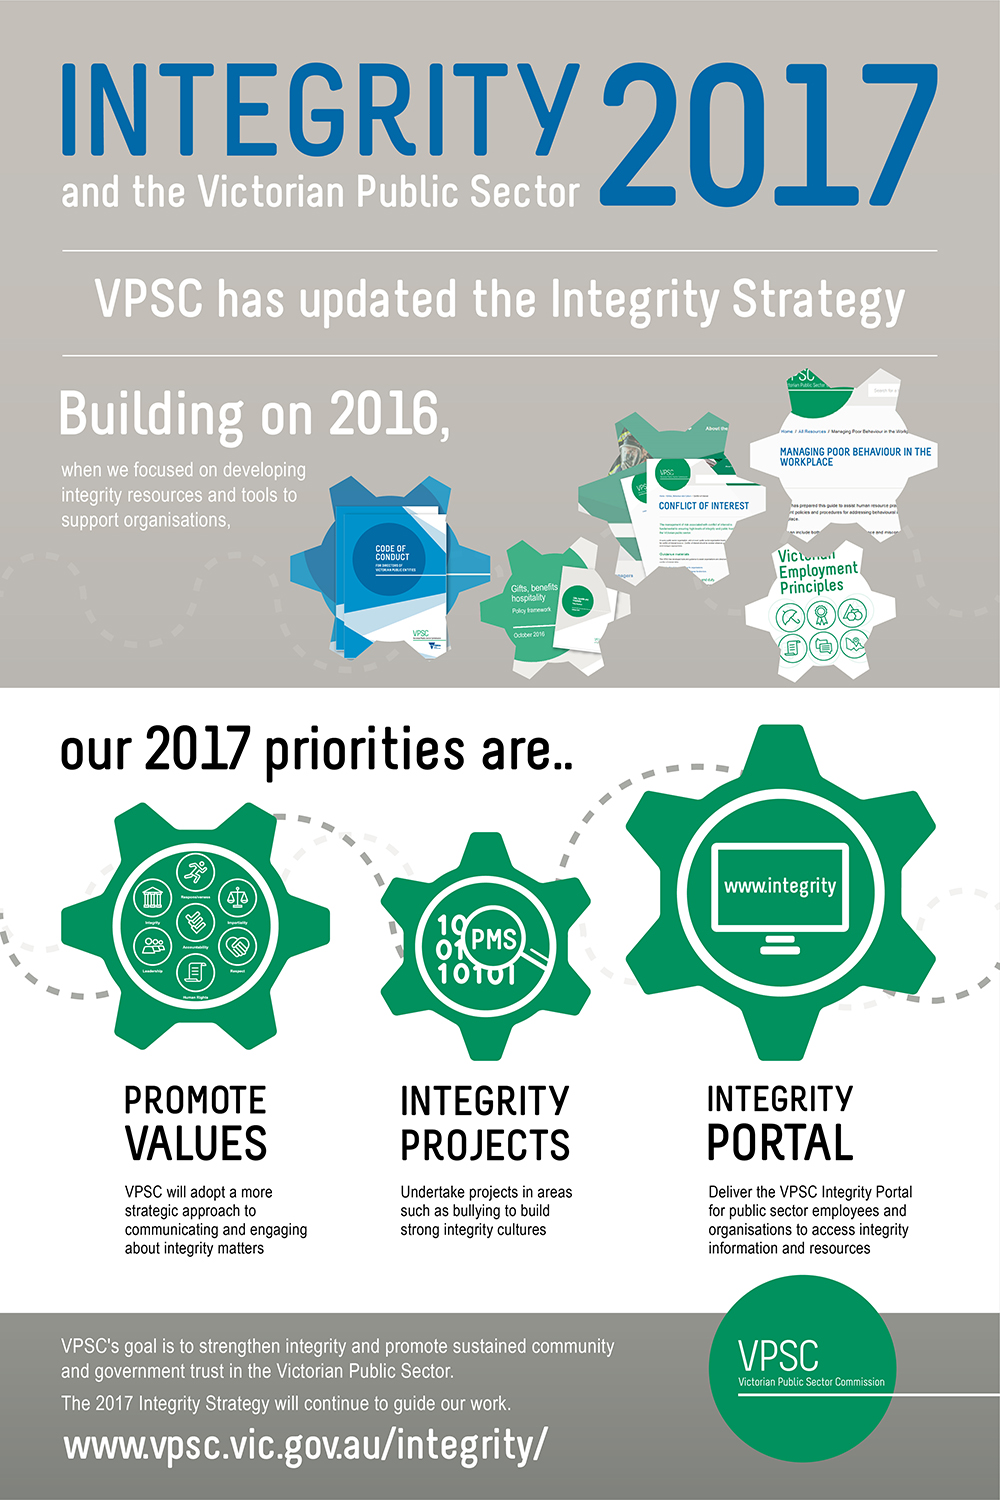 VPSC has updated its Integrity Strategy 2017. Full text description at http://vpsc.vic.gov.au/ethics-behaviours-culture/promoting-integrity/integrity-strategy-2017-infographic/